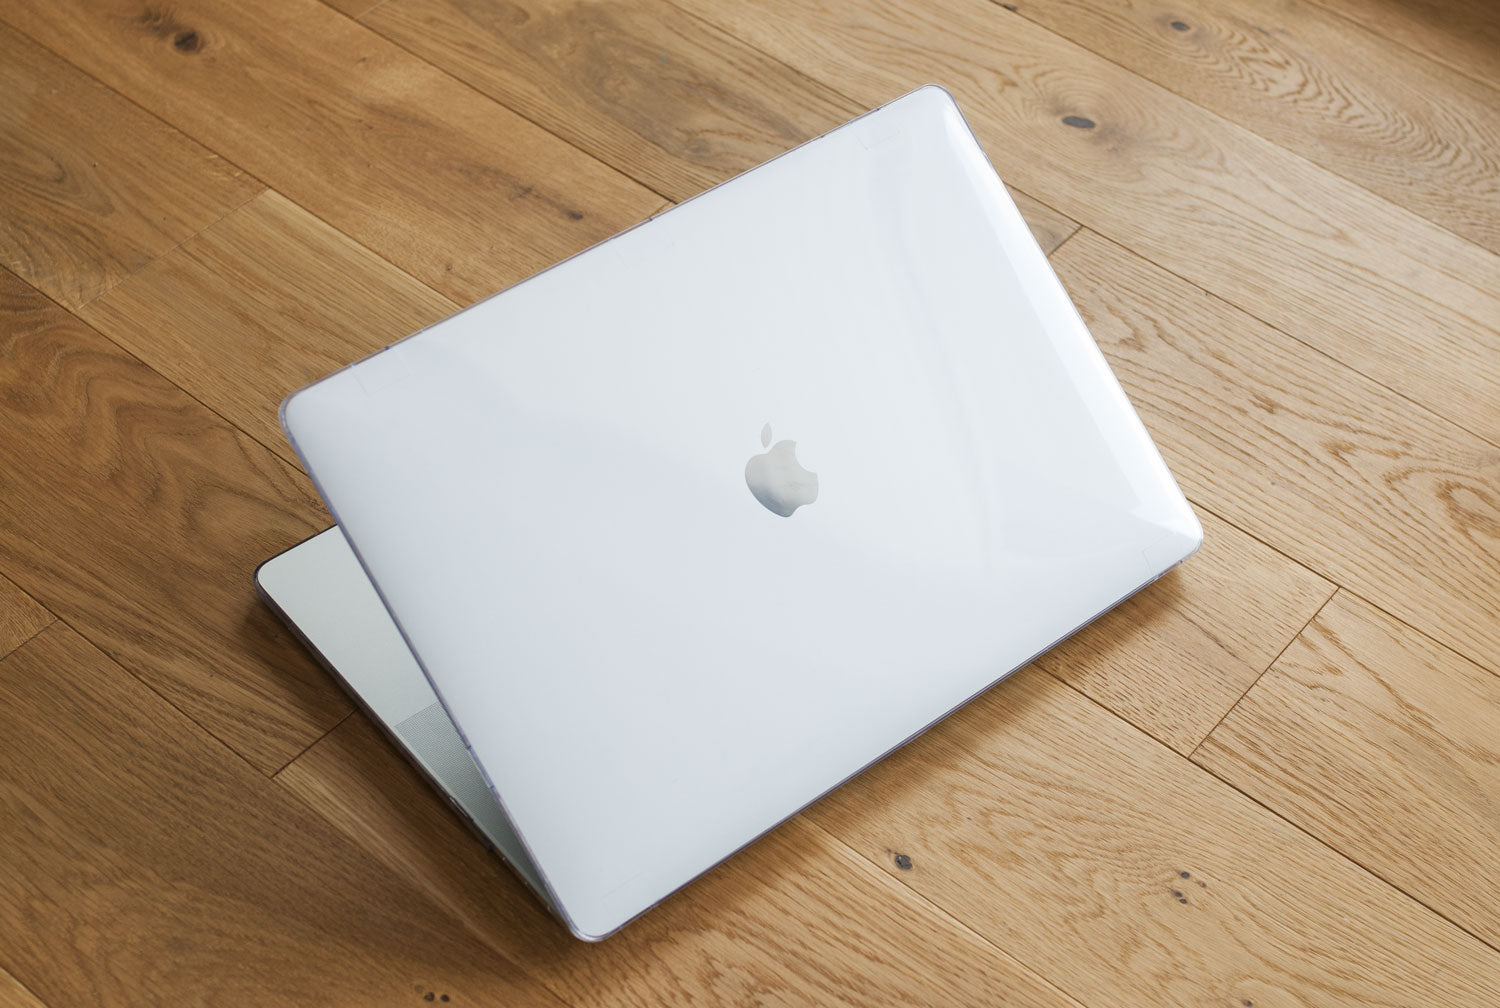 new arrival f0cfd 811fb Clear MacBook Case for MacBook Pro 15 Unibody